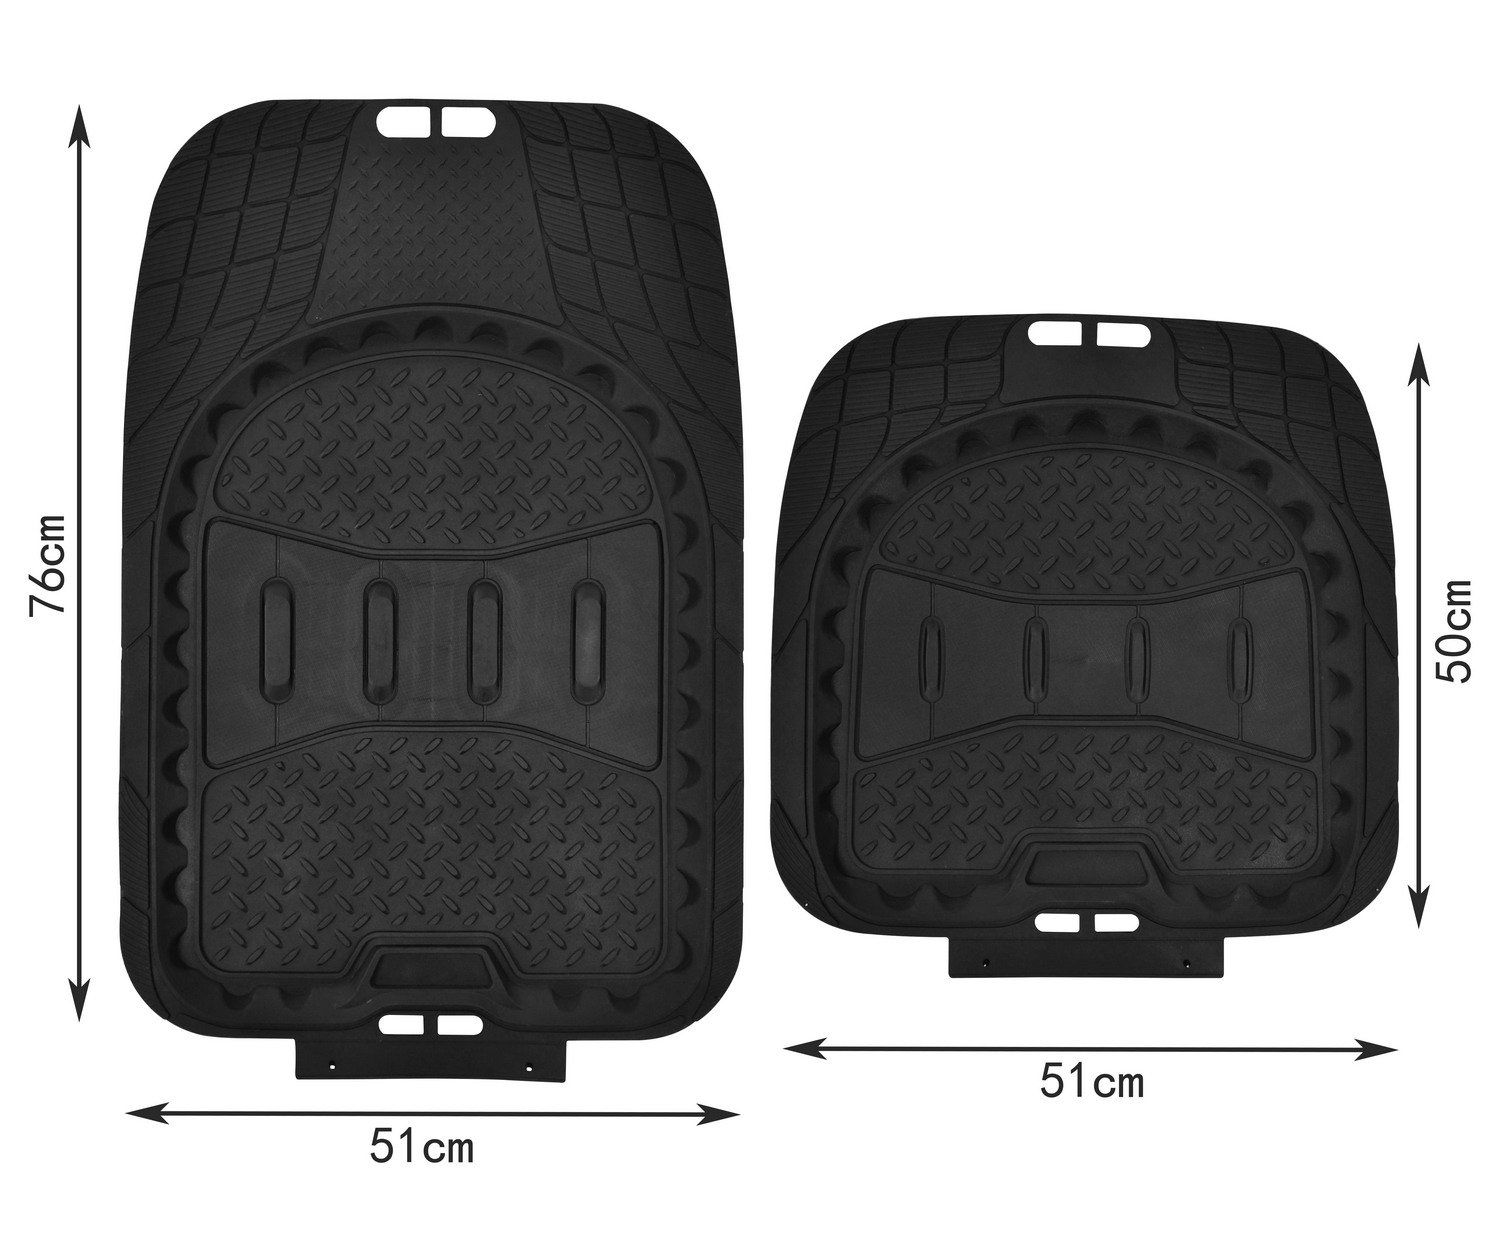 Heavy Duty Rubber Floor Mats Car Floor Mats 4pc All Weather Protection Universal Car Truck Suv Black